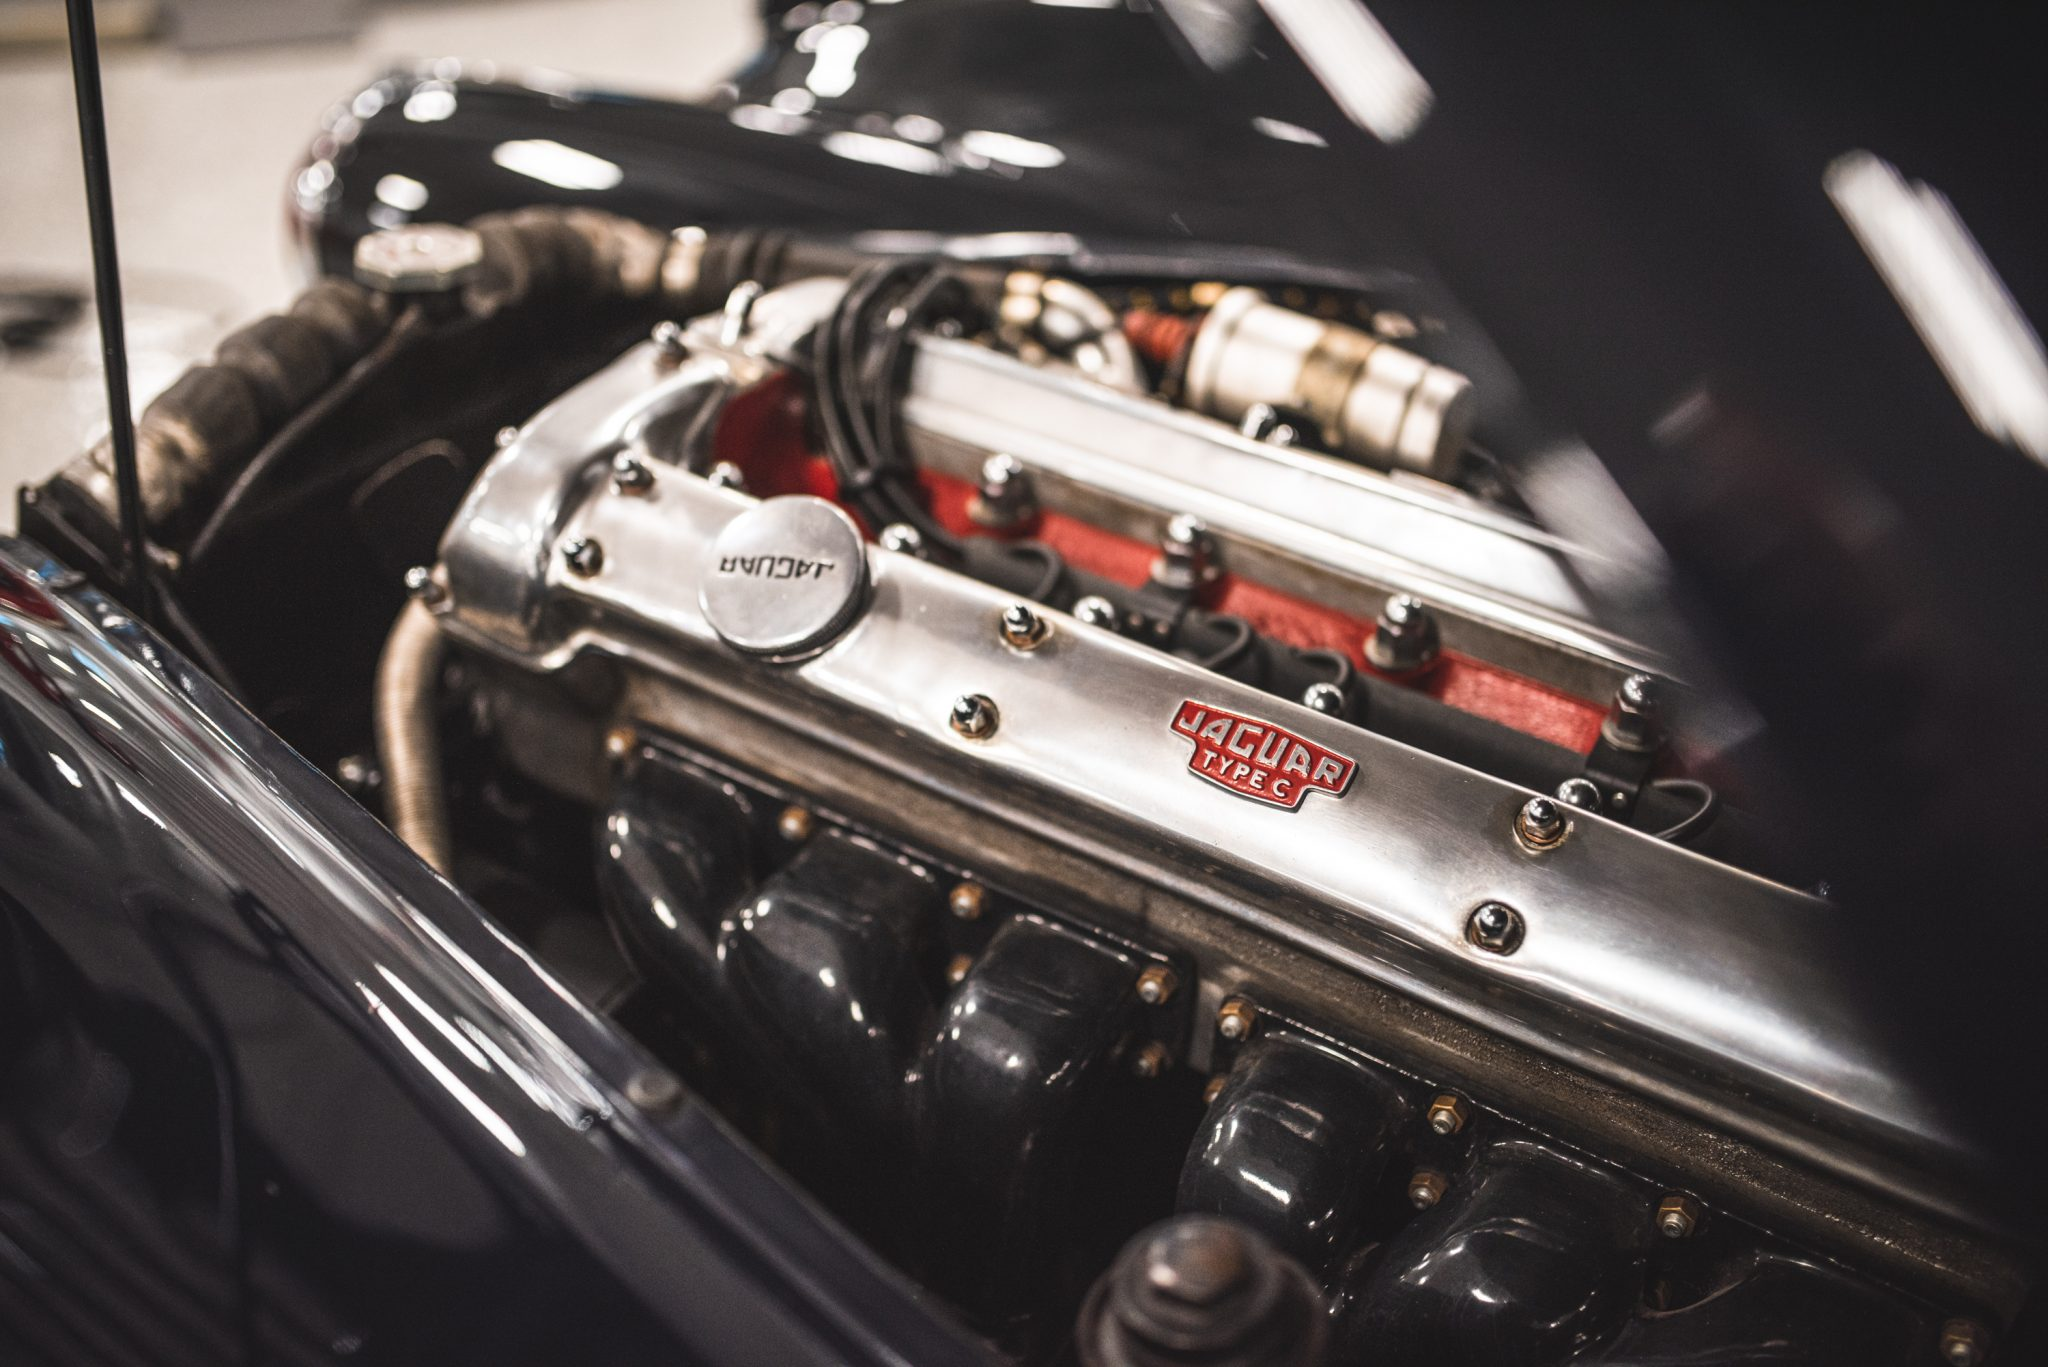 Jag C-Type engine valve cover detail